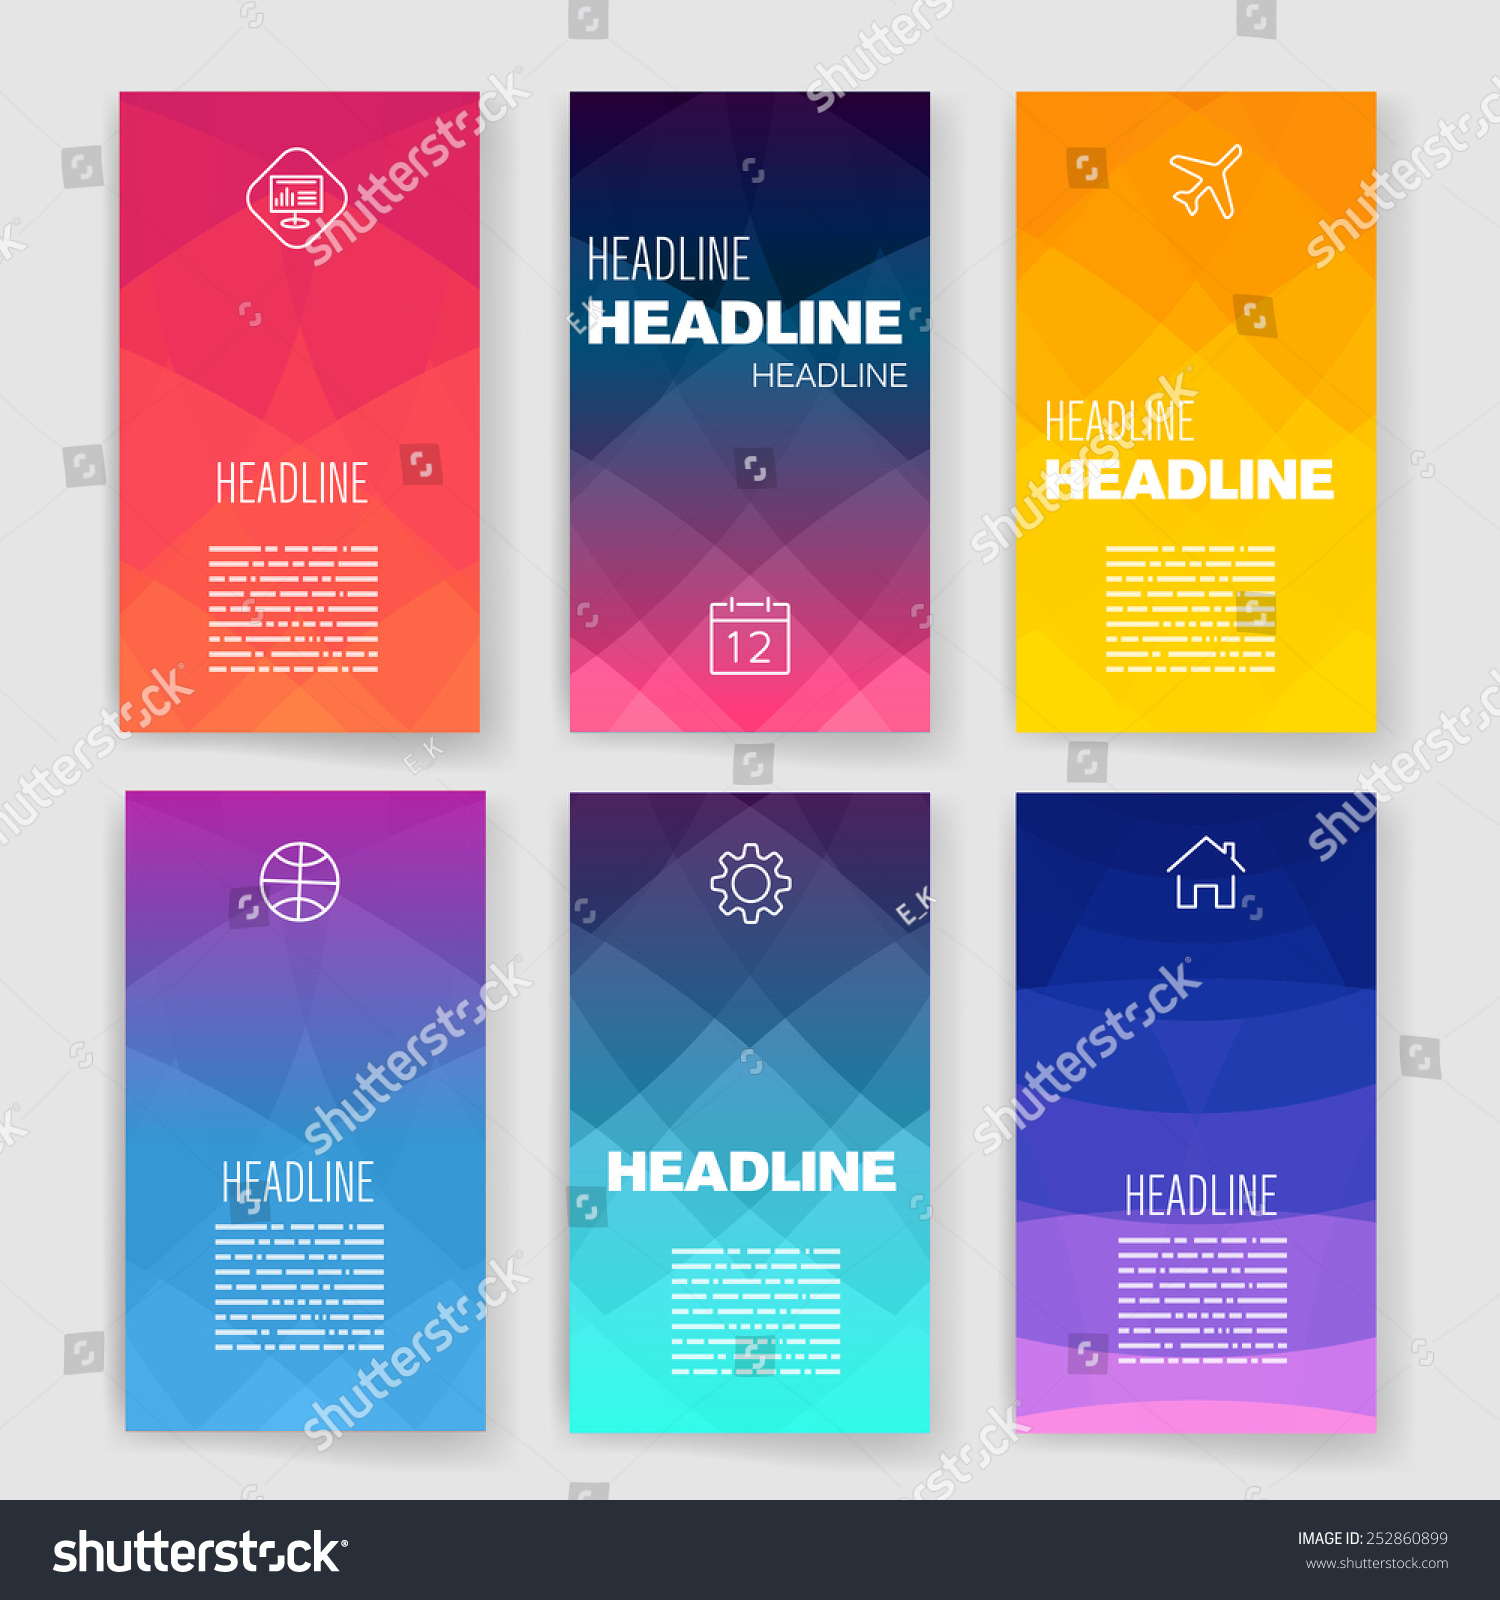 Templates design set web mail brochures stock vector for Mobile app privacy policy template